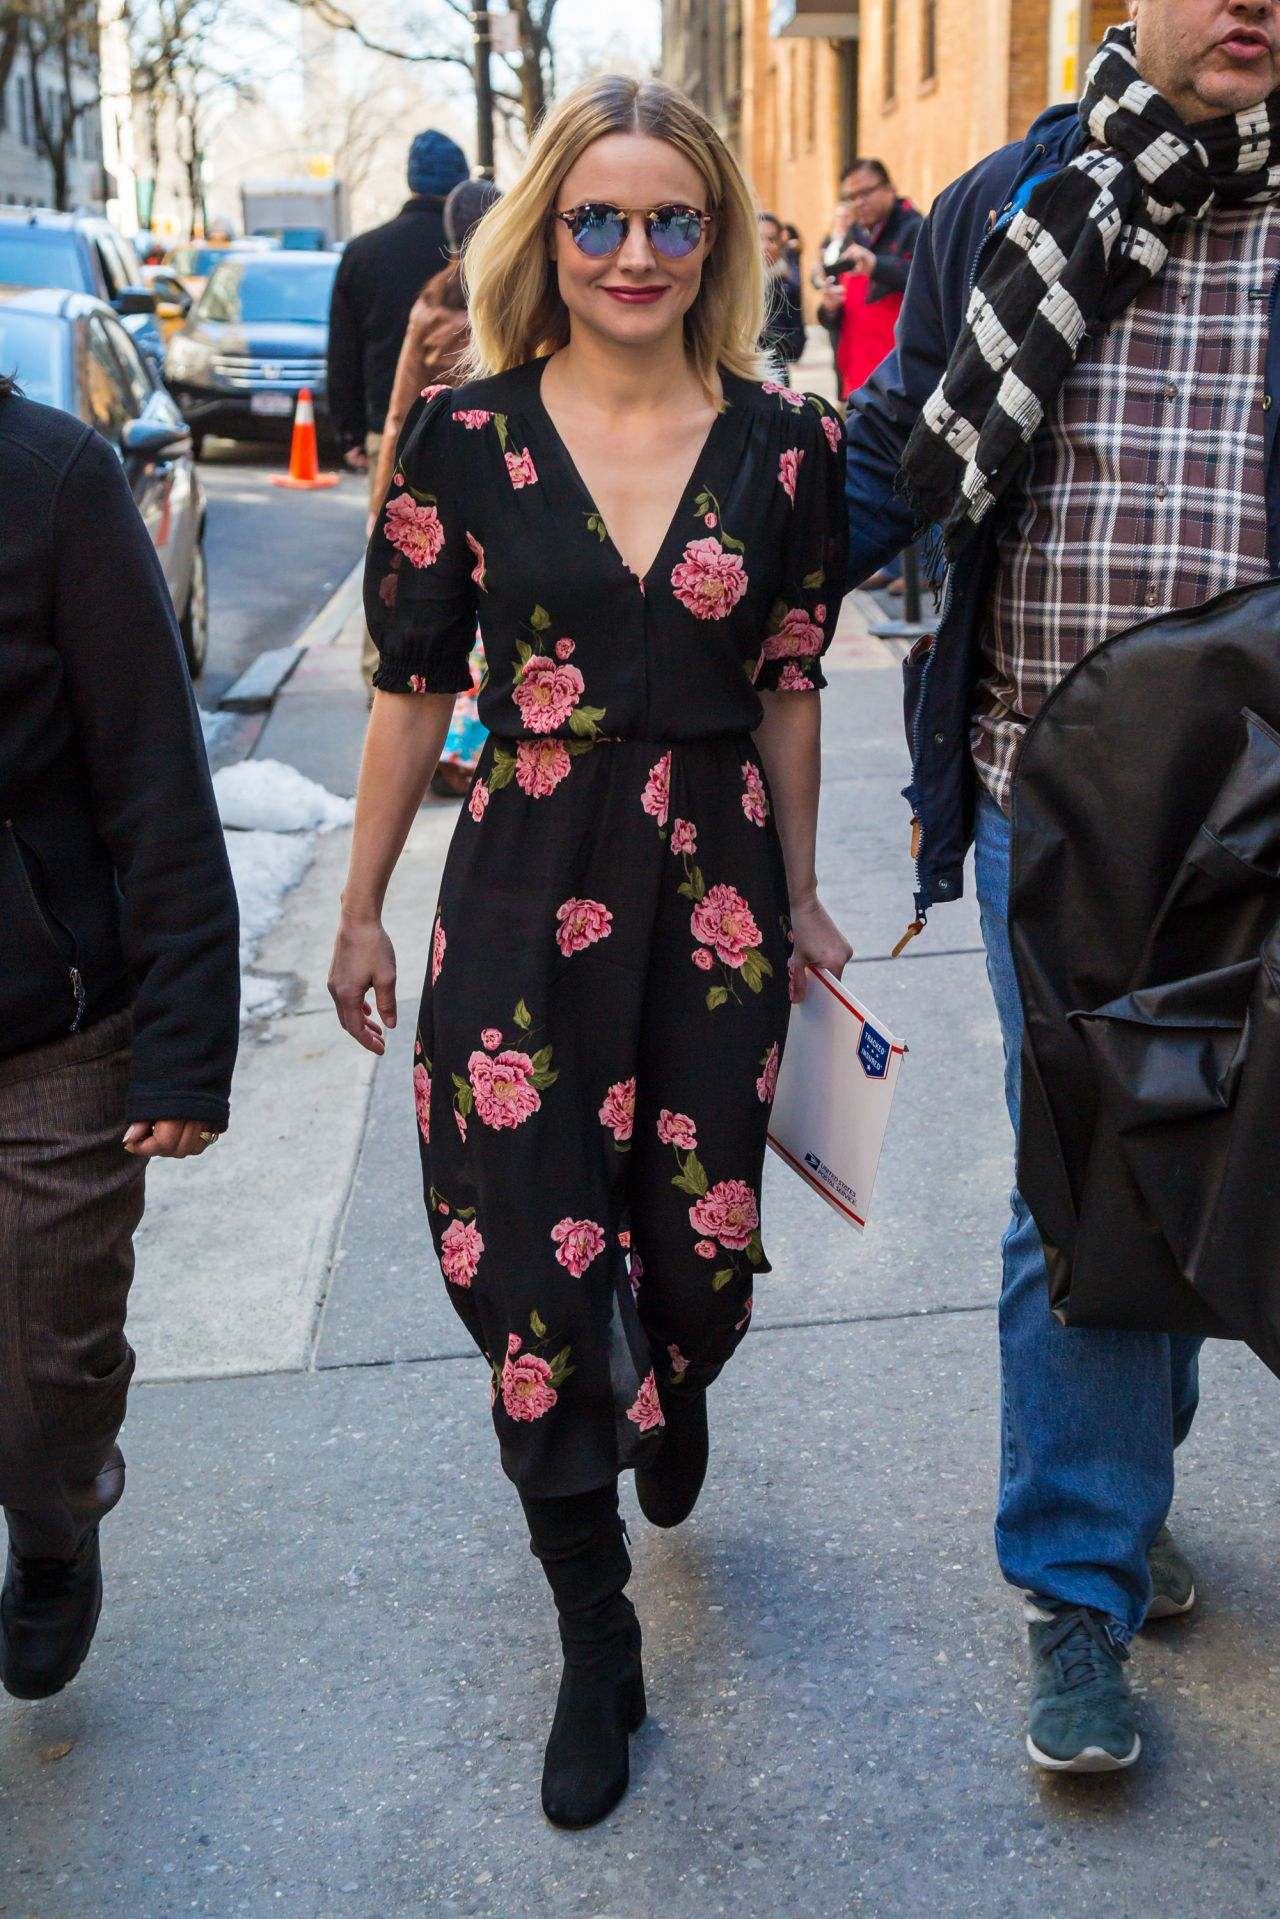 Kristen bell casual style midtown in new york naked (73 image)